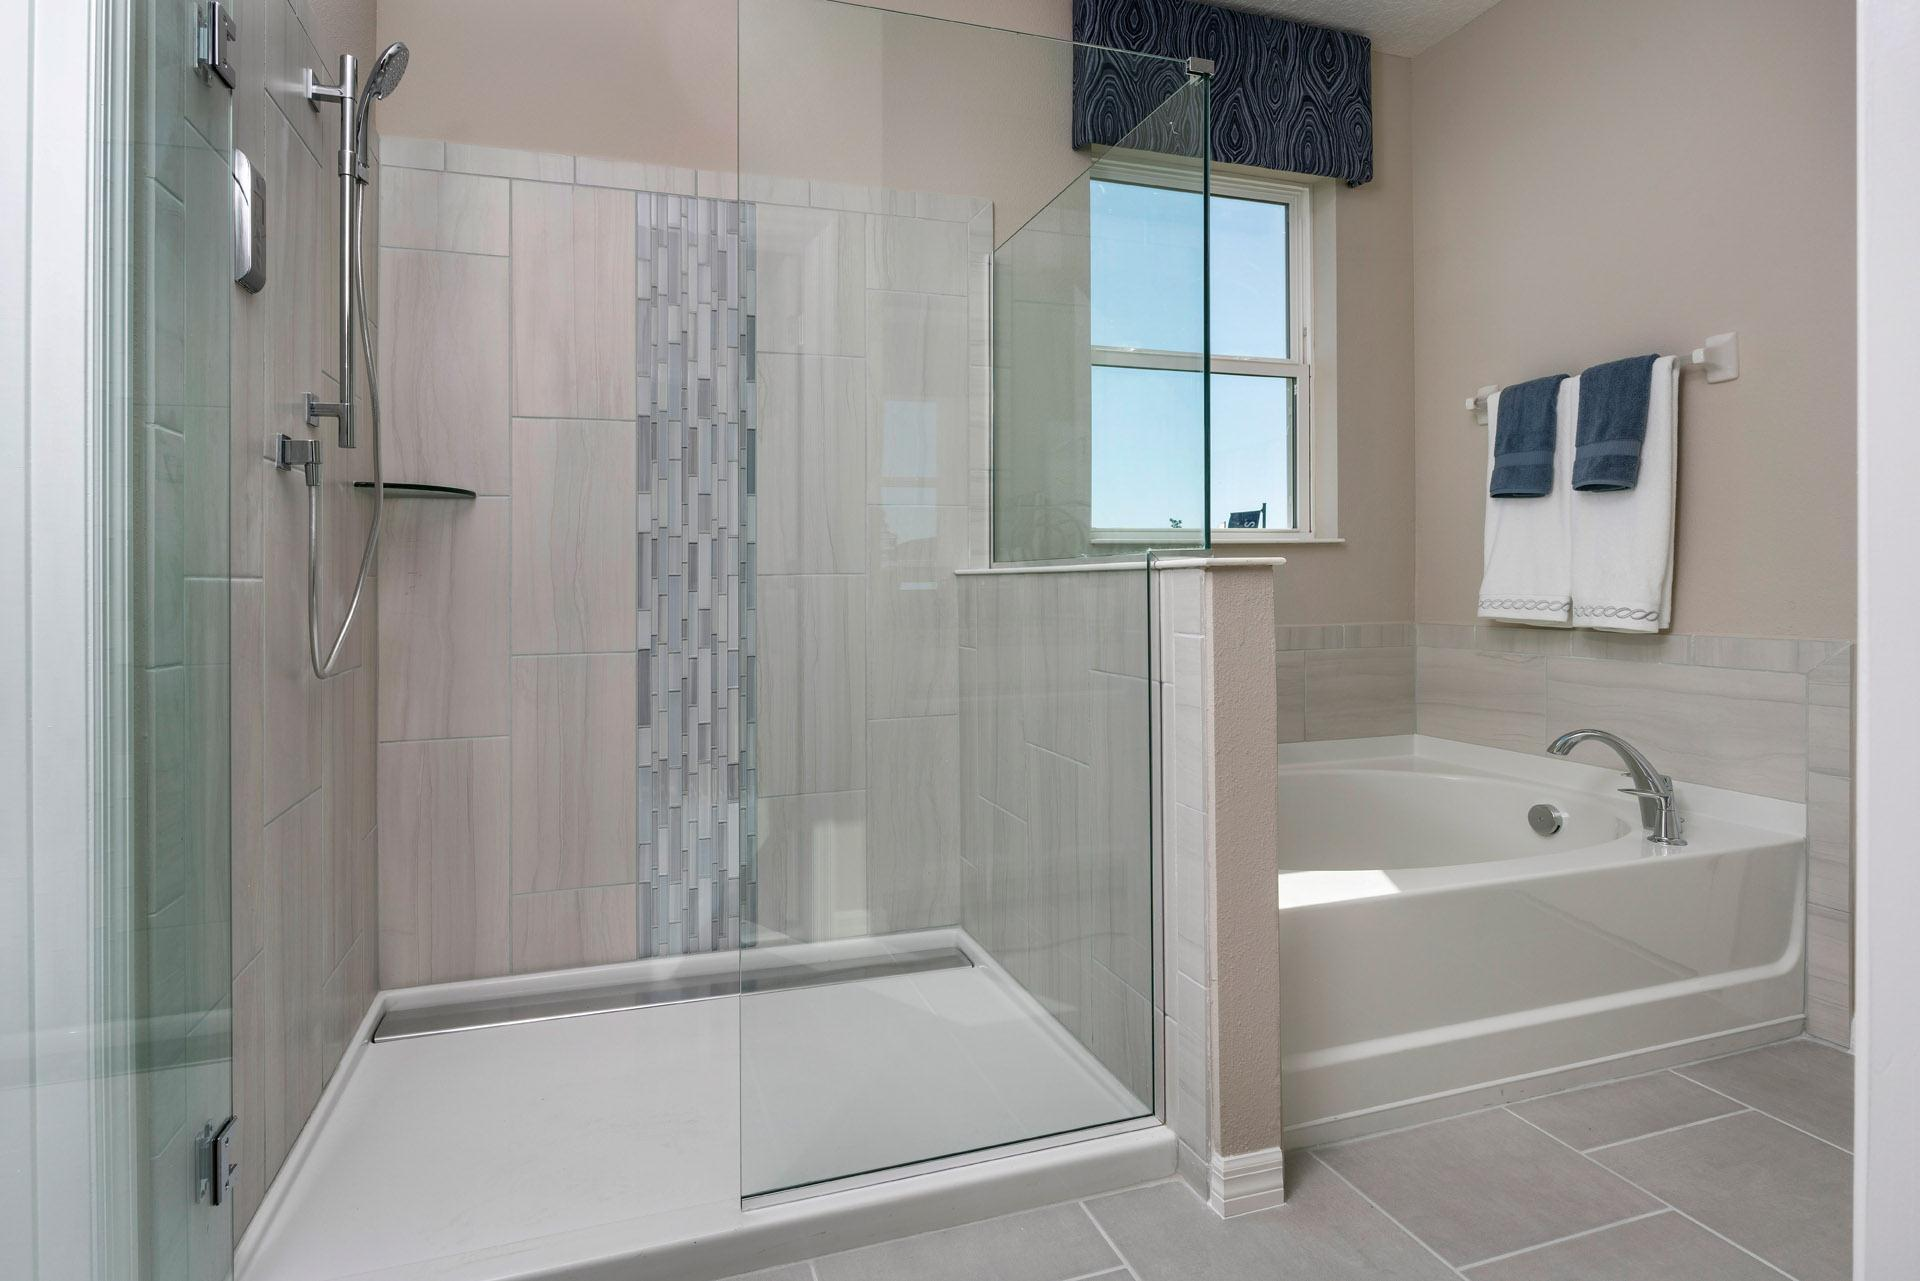 Bathroom featured in the Kensington Flex By Hanover Family Builders in Lakeland-Winter Haven, FL